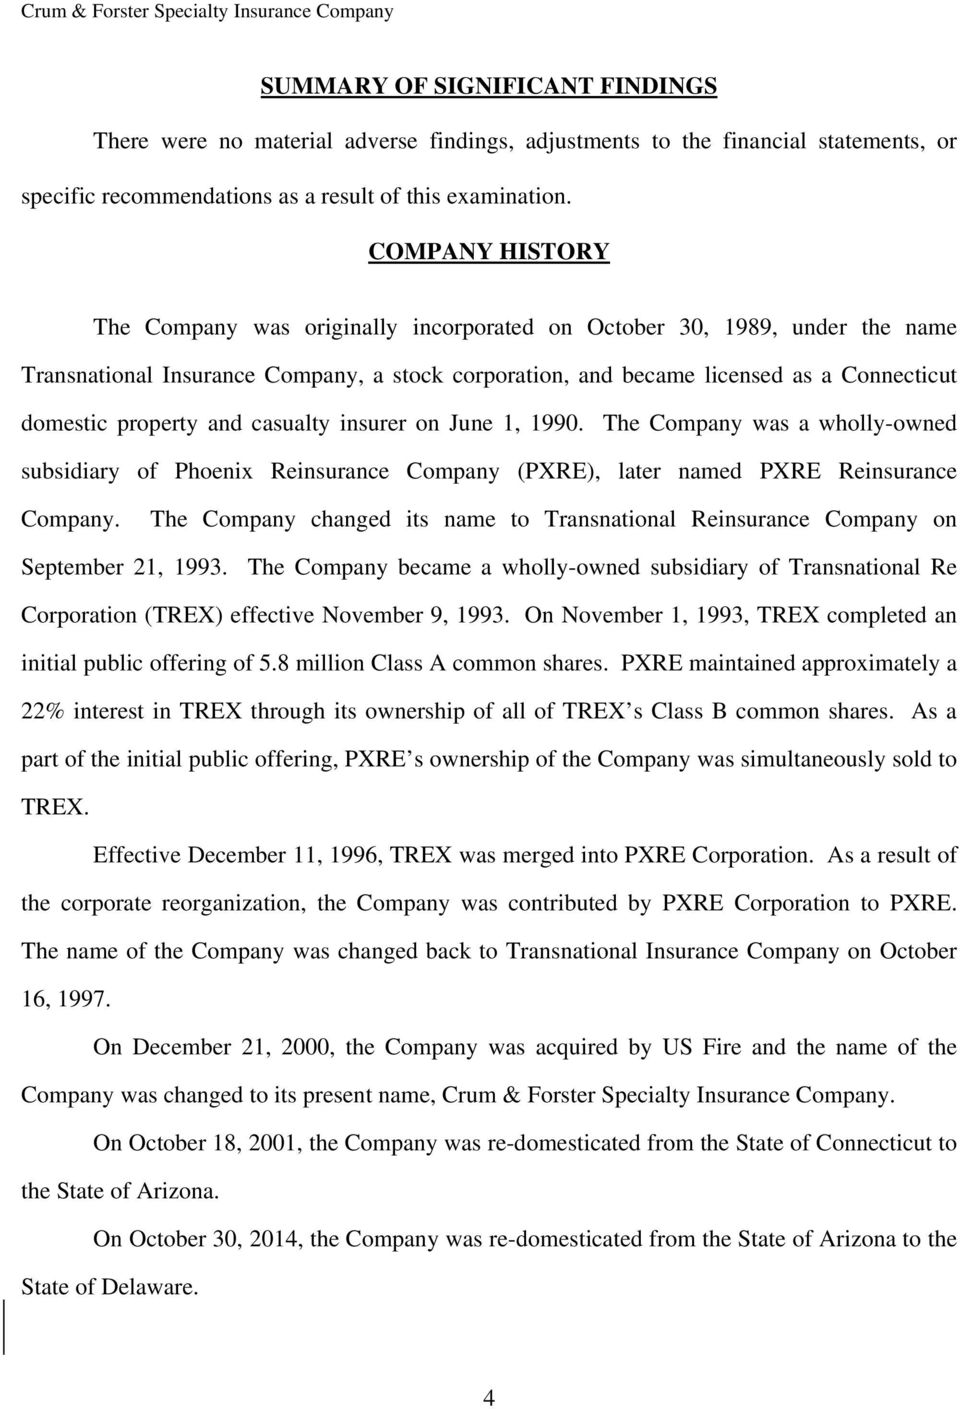 property and casualty insurer on June 1, 1990. The Company was a wholly-owned subsidiary of Phoenix Reinsurance Company (PXRE), later named PXRE Reinsurance Company.